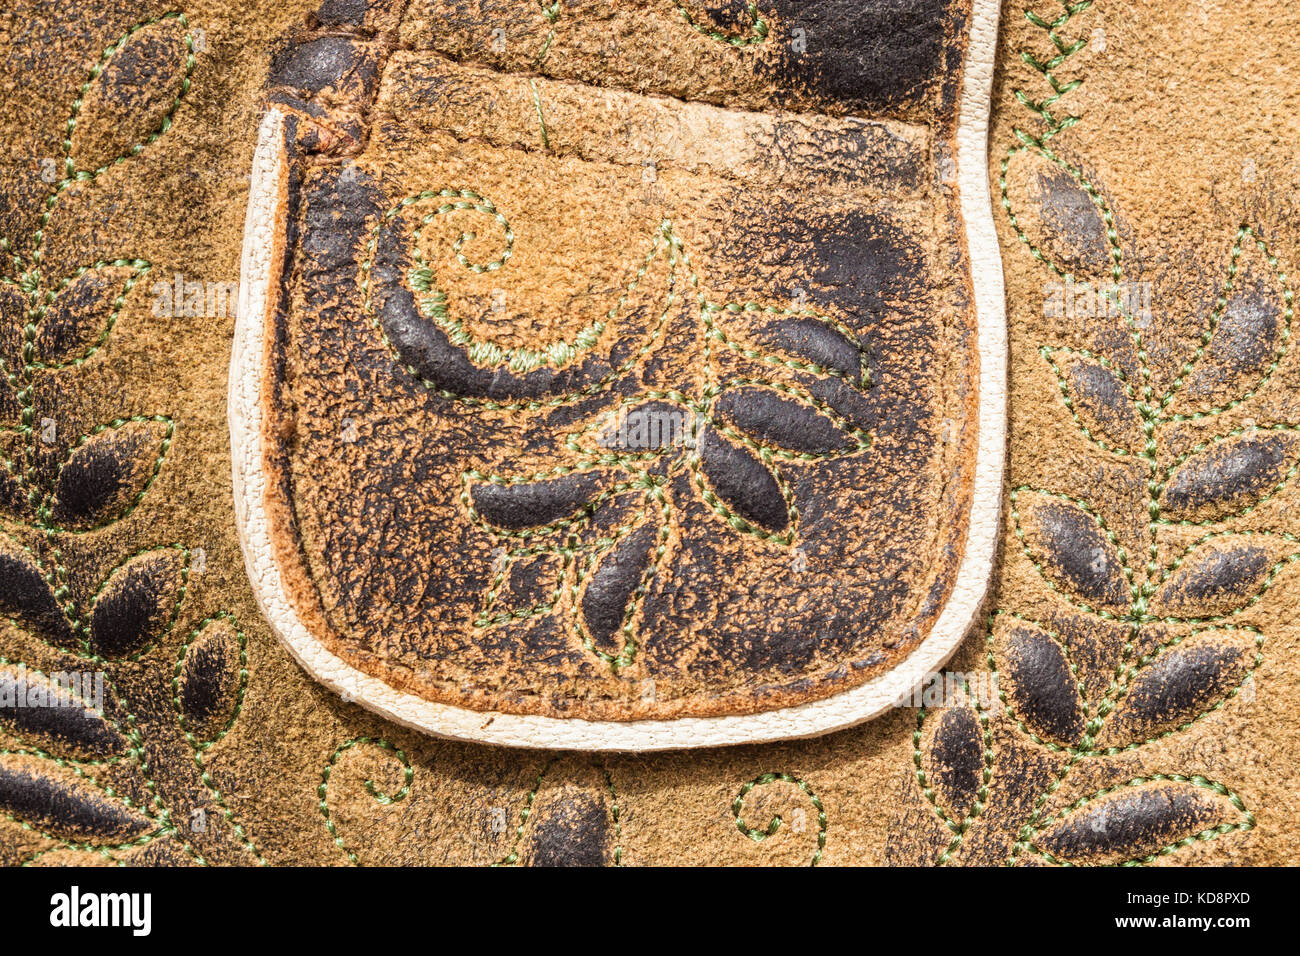 Closeup of traditional bavarian and austrian lederhosen (leather pants). Lether relief and embroidered ornament. - Stock Image